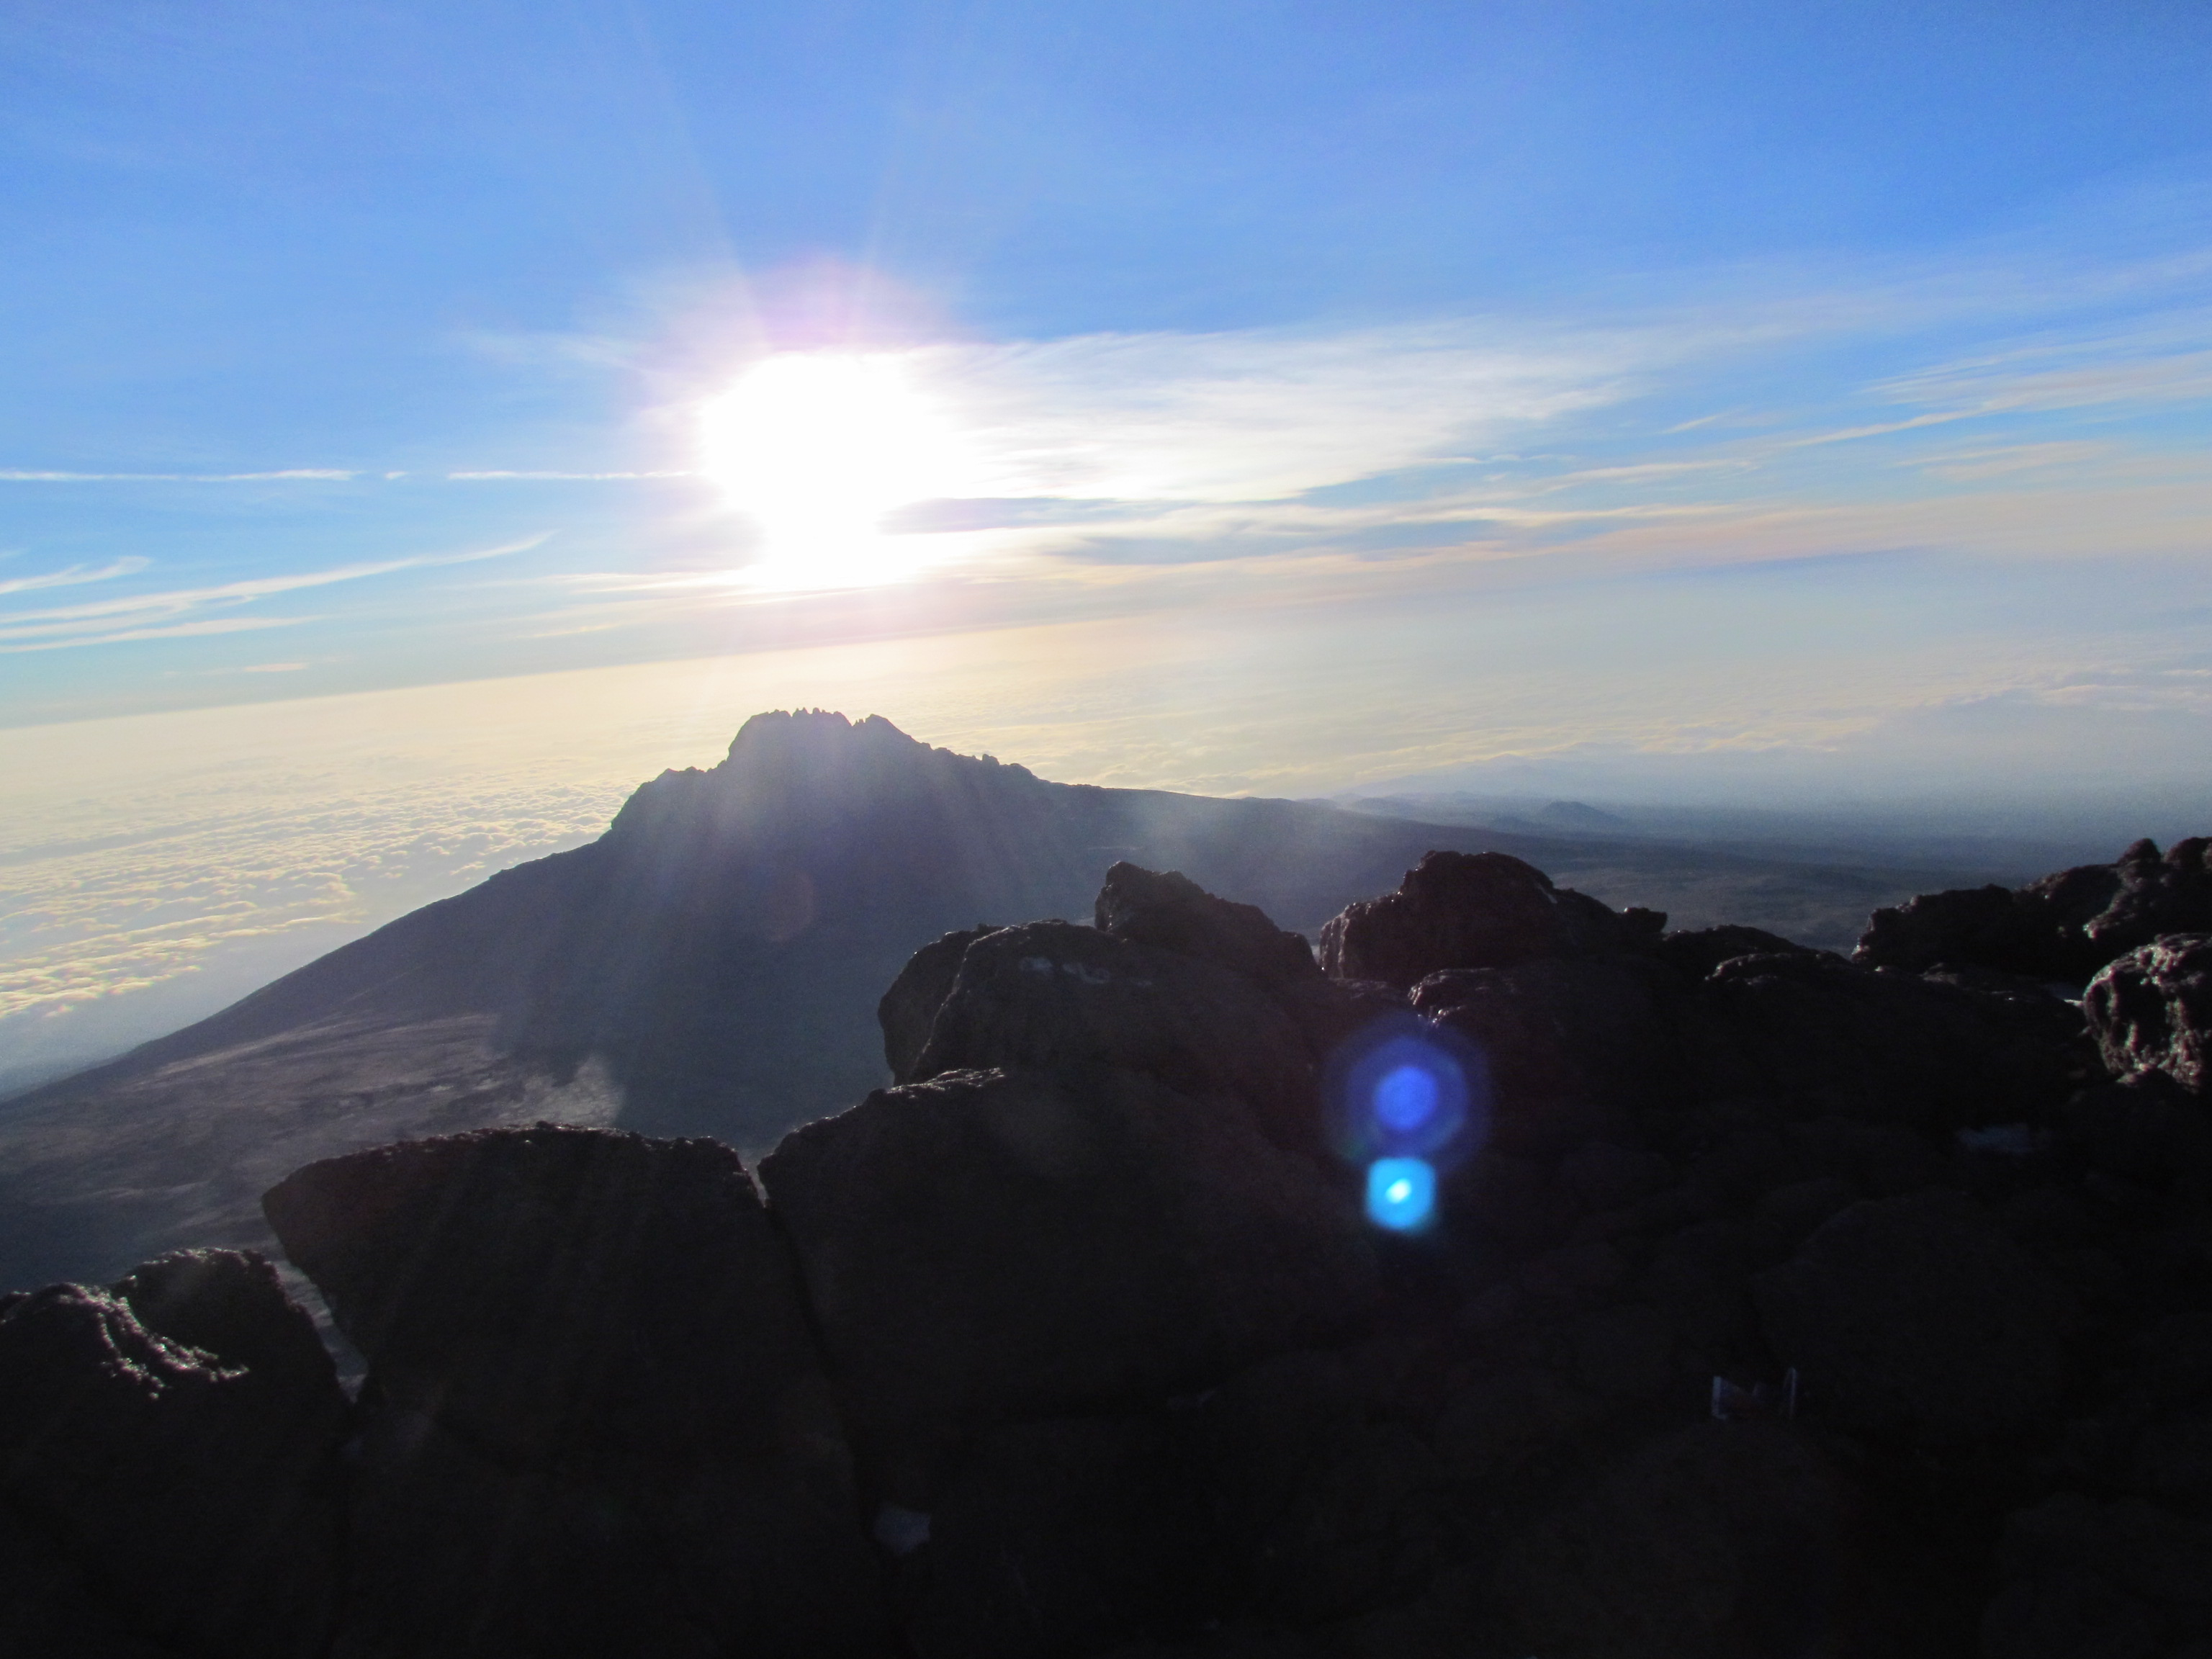 The view from the top of Mount Kilimanjaro, where a satellite hotspot would have been handy